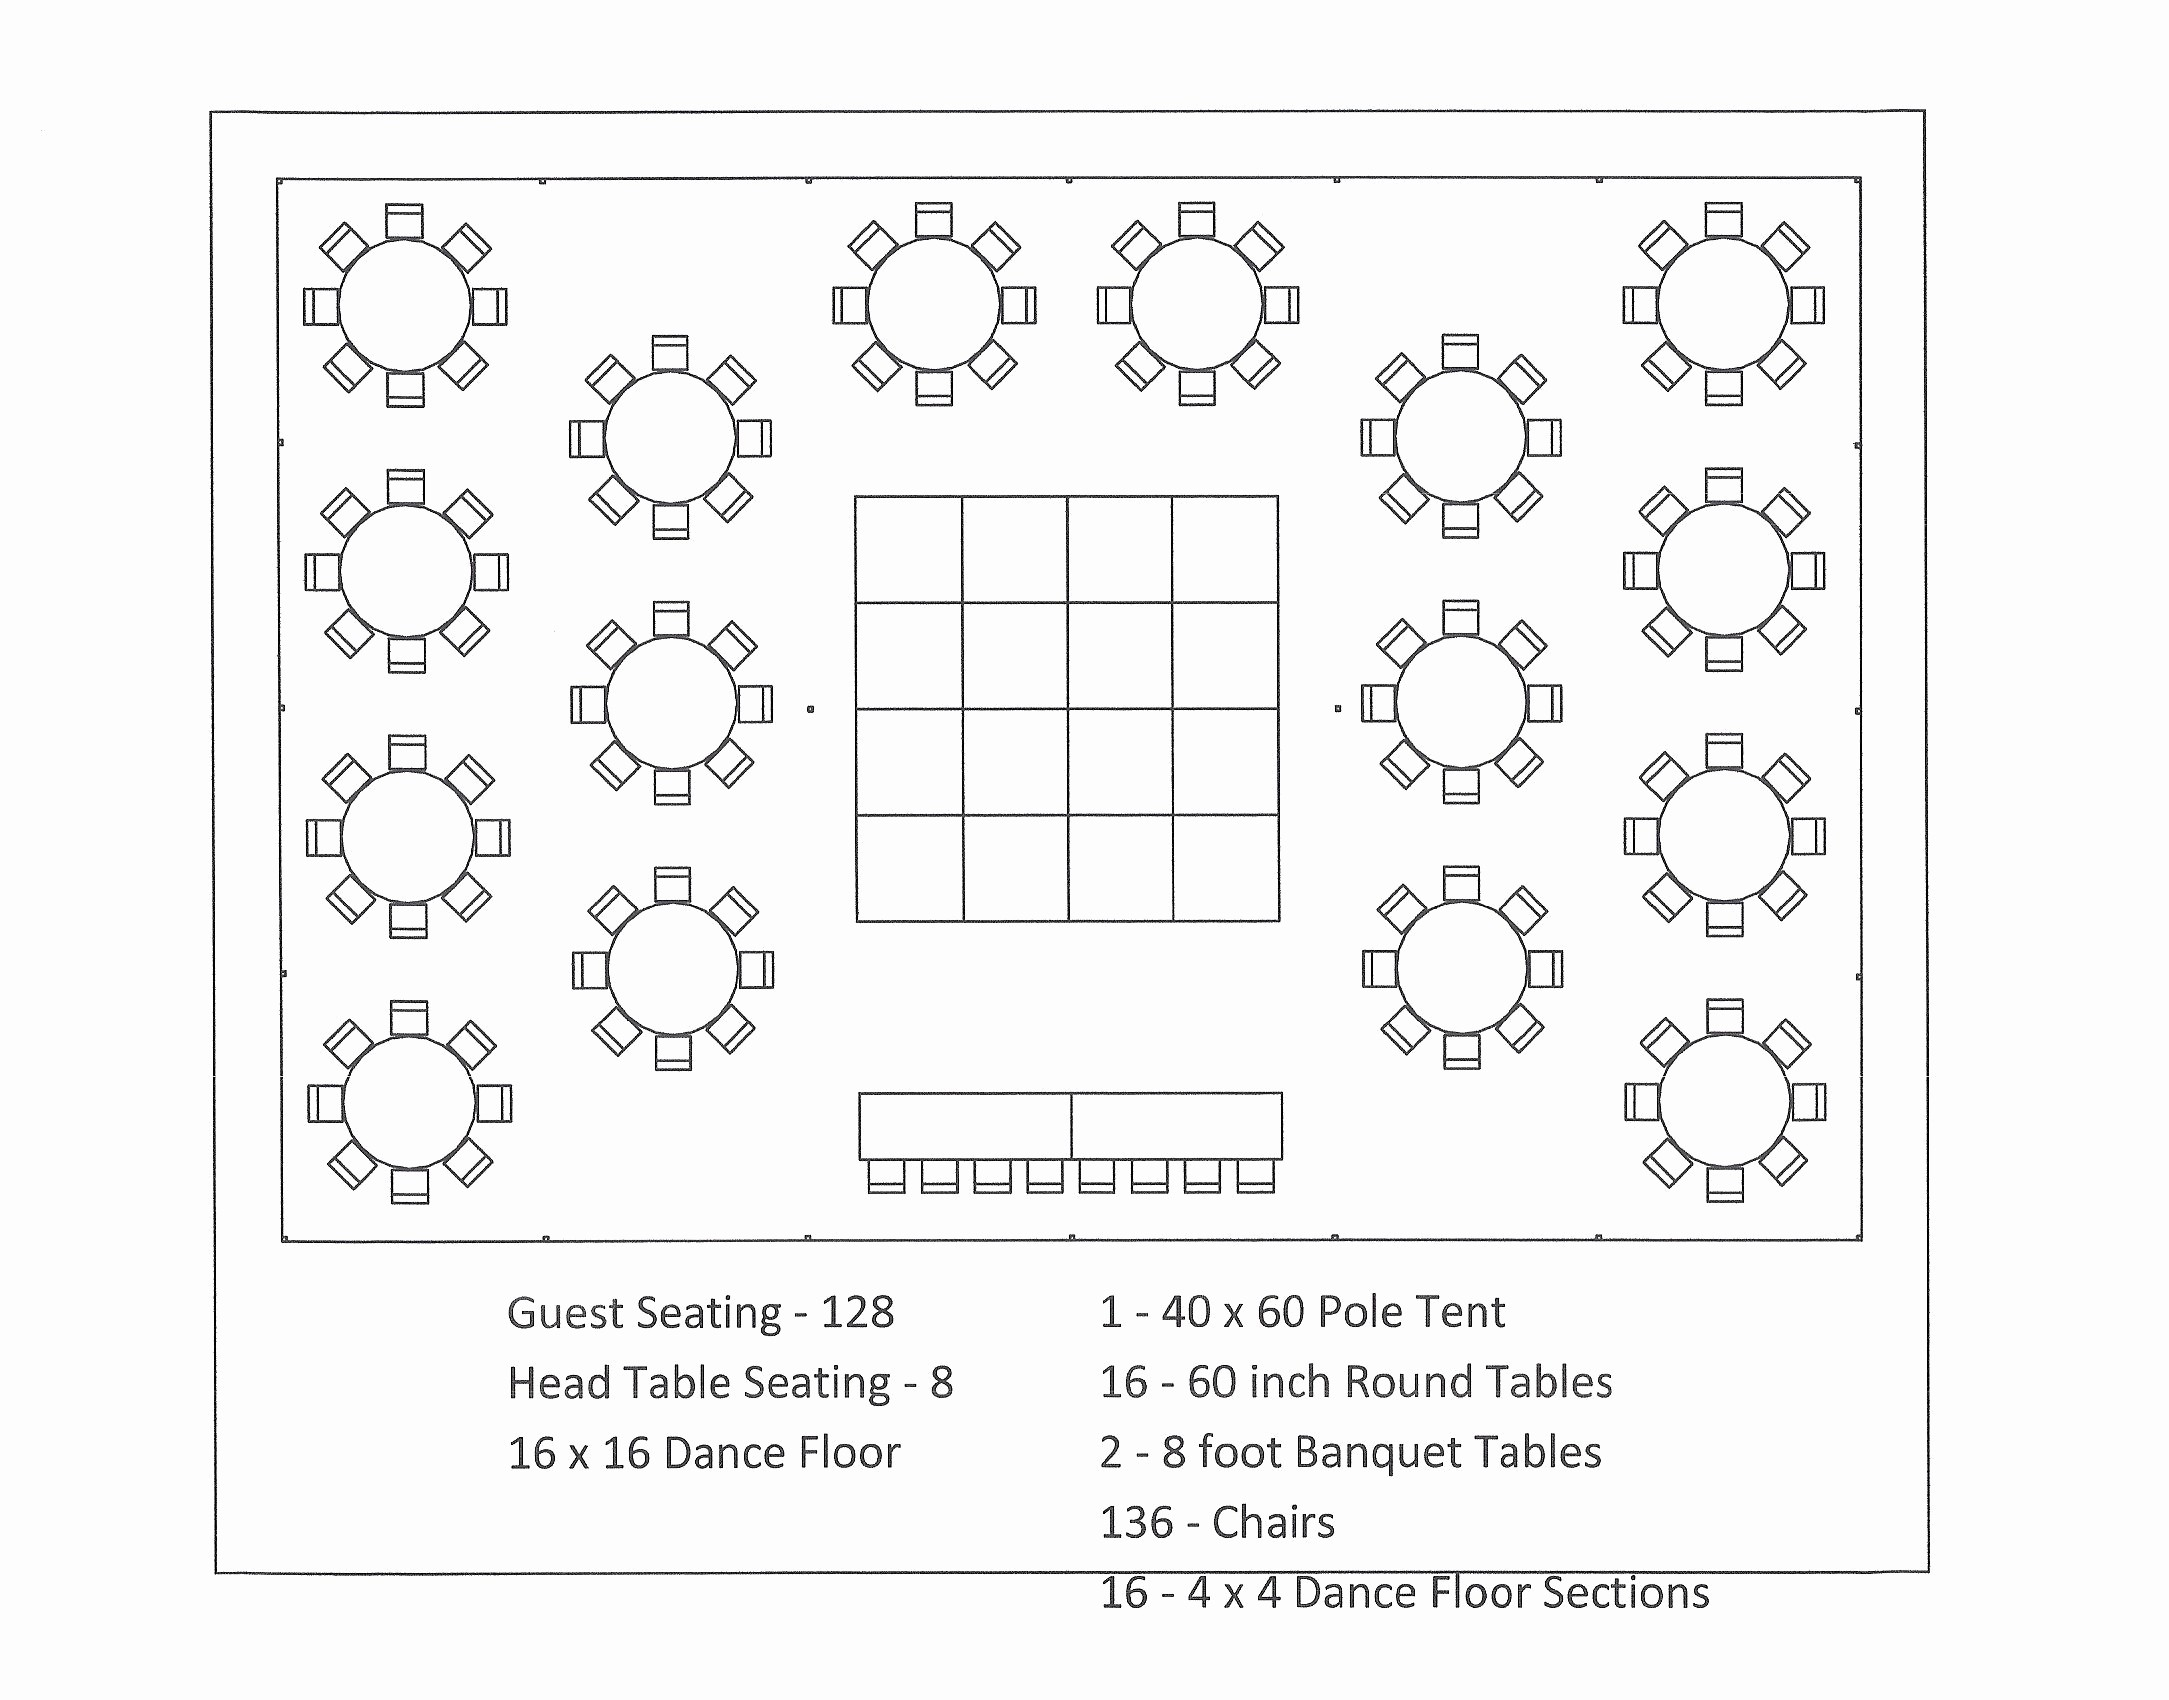 Wedding Table Seating Chart Template Inspirational Seating Chart for Wedding Reception Template